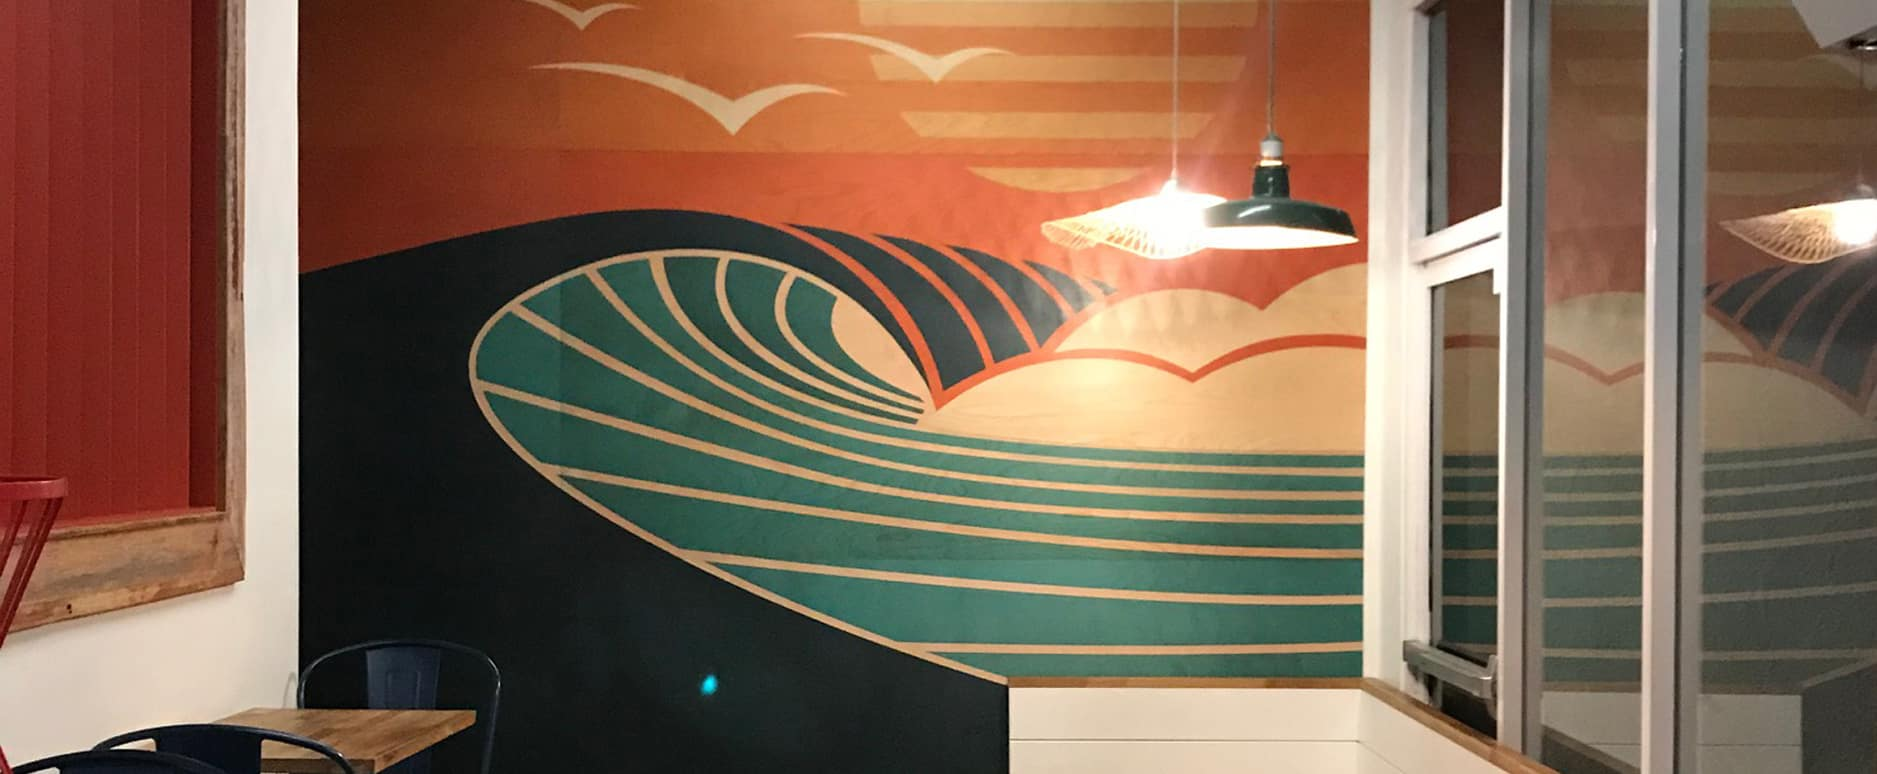 San Diego art, Wood Mural, Shaun Thomas, Surf Art